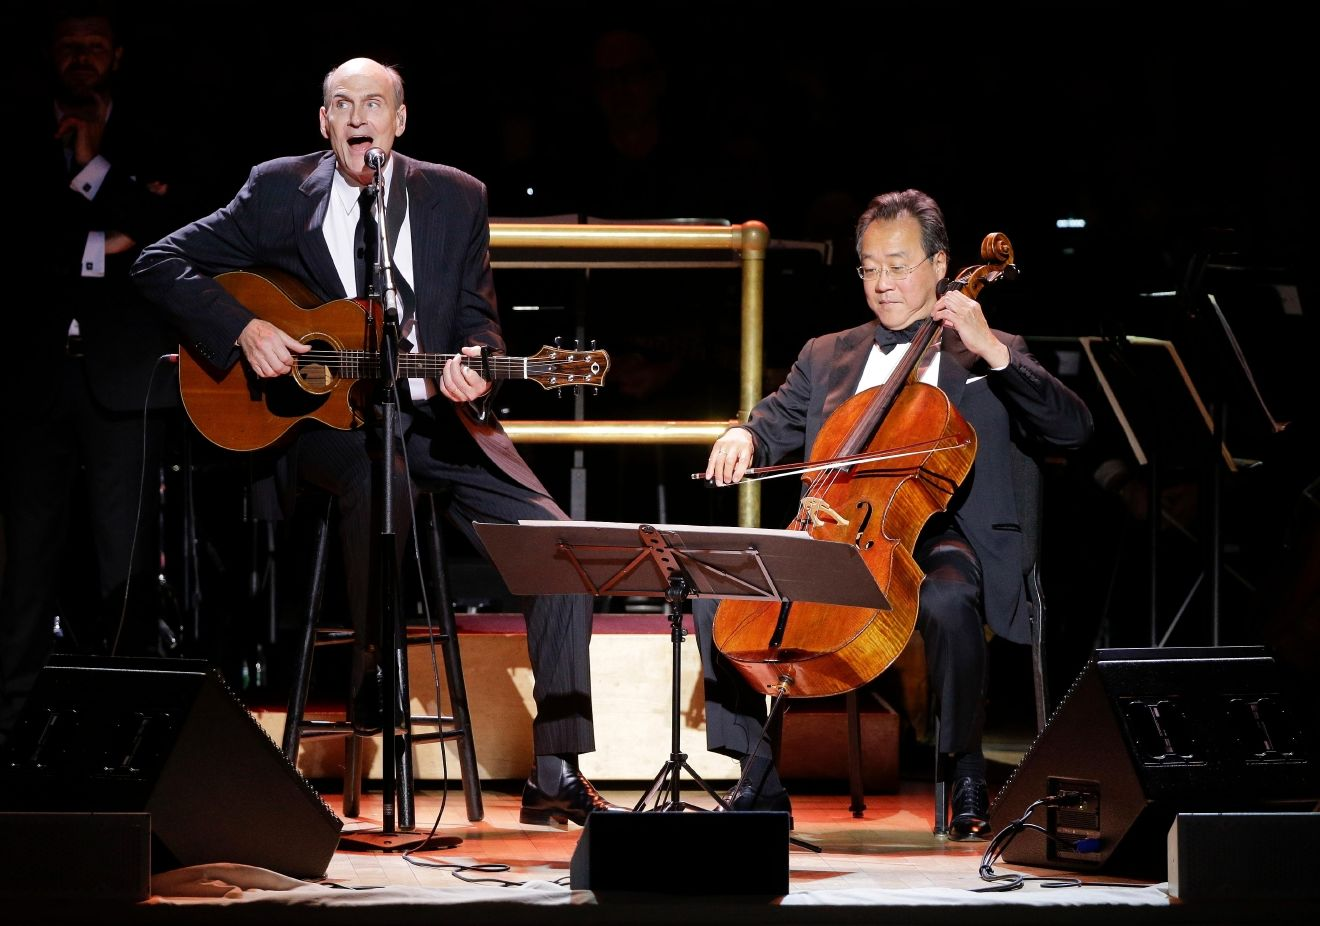 James Taylor, left, performs with cellist Yo-Yo Ma during Carnegie Hall's 125th Anniversary Concert, Thursday, May 5, 2016, in, New York. (AP Photo/Julie Jacobson)